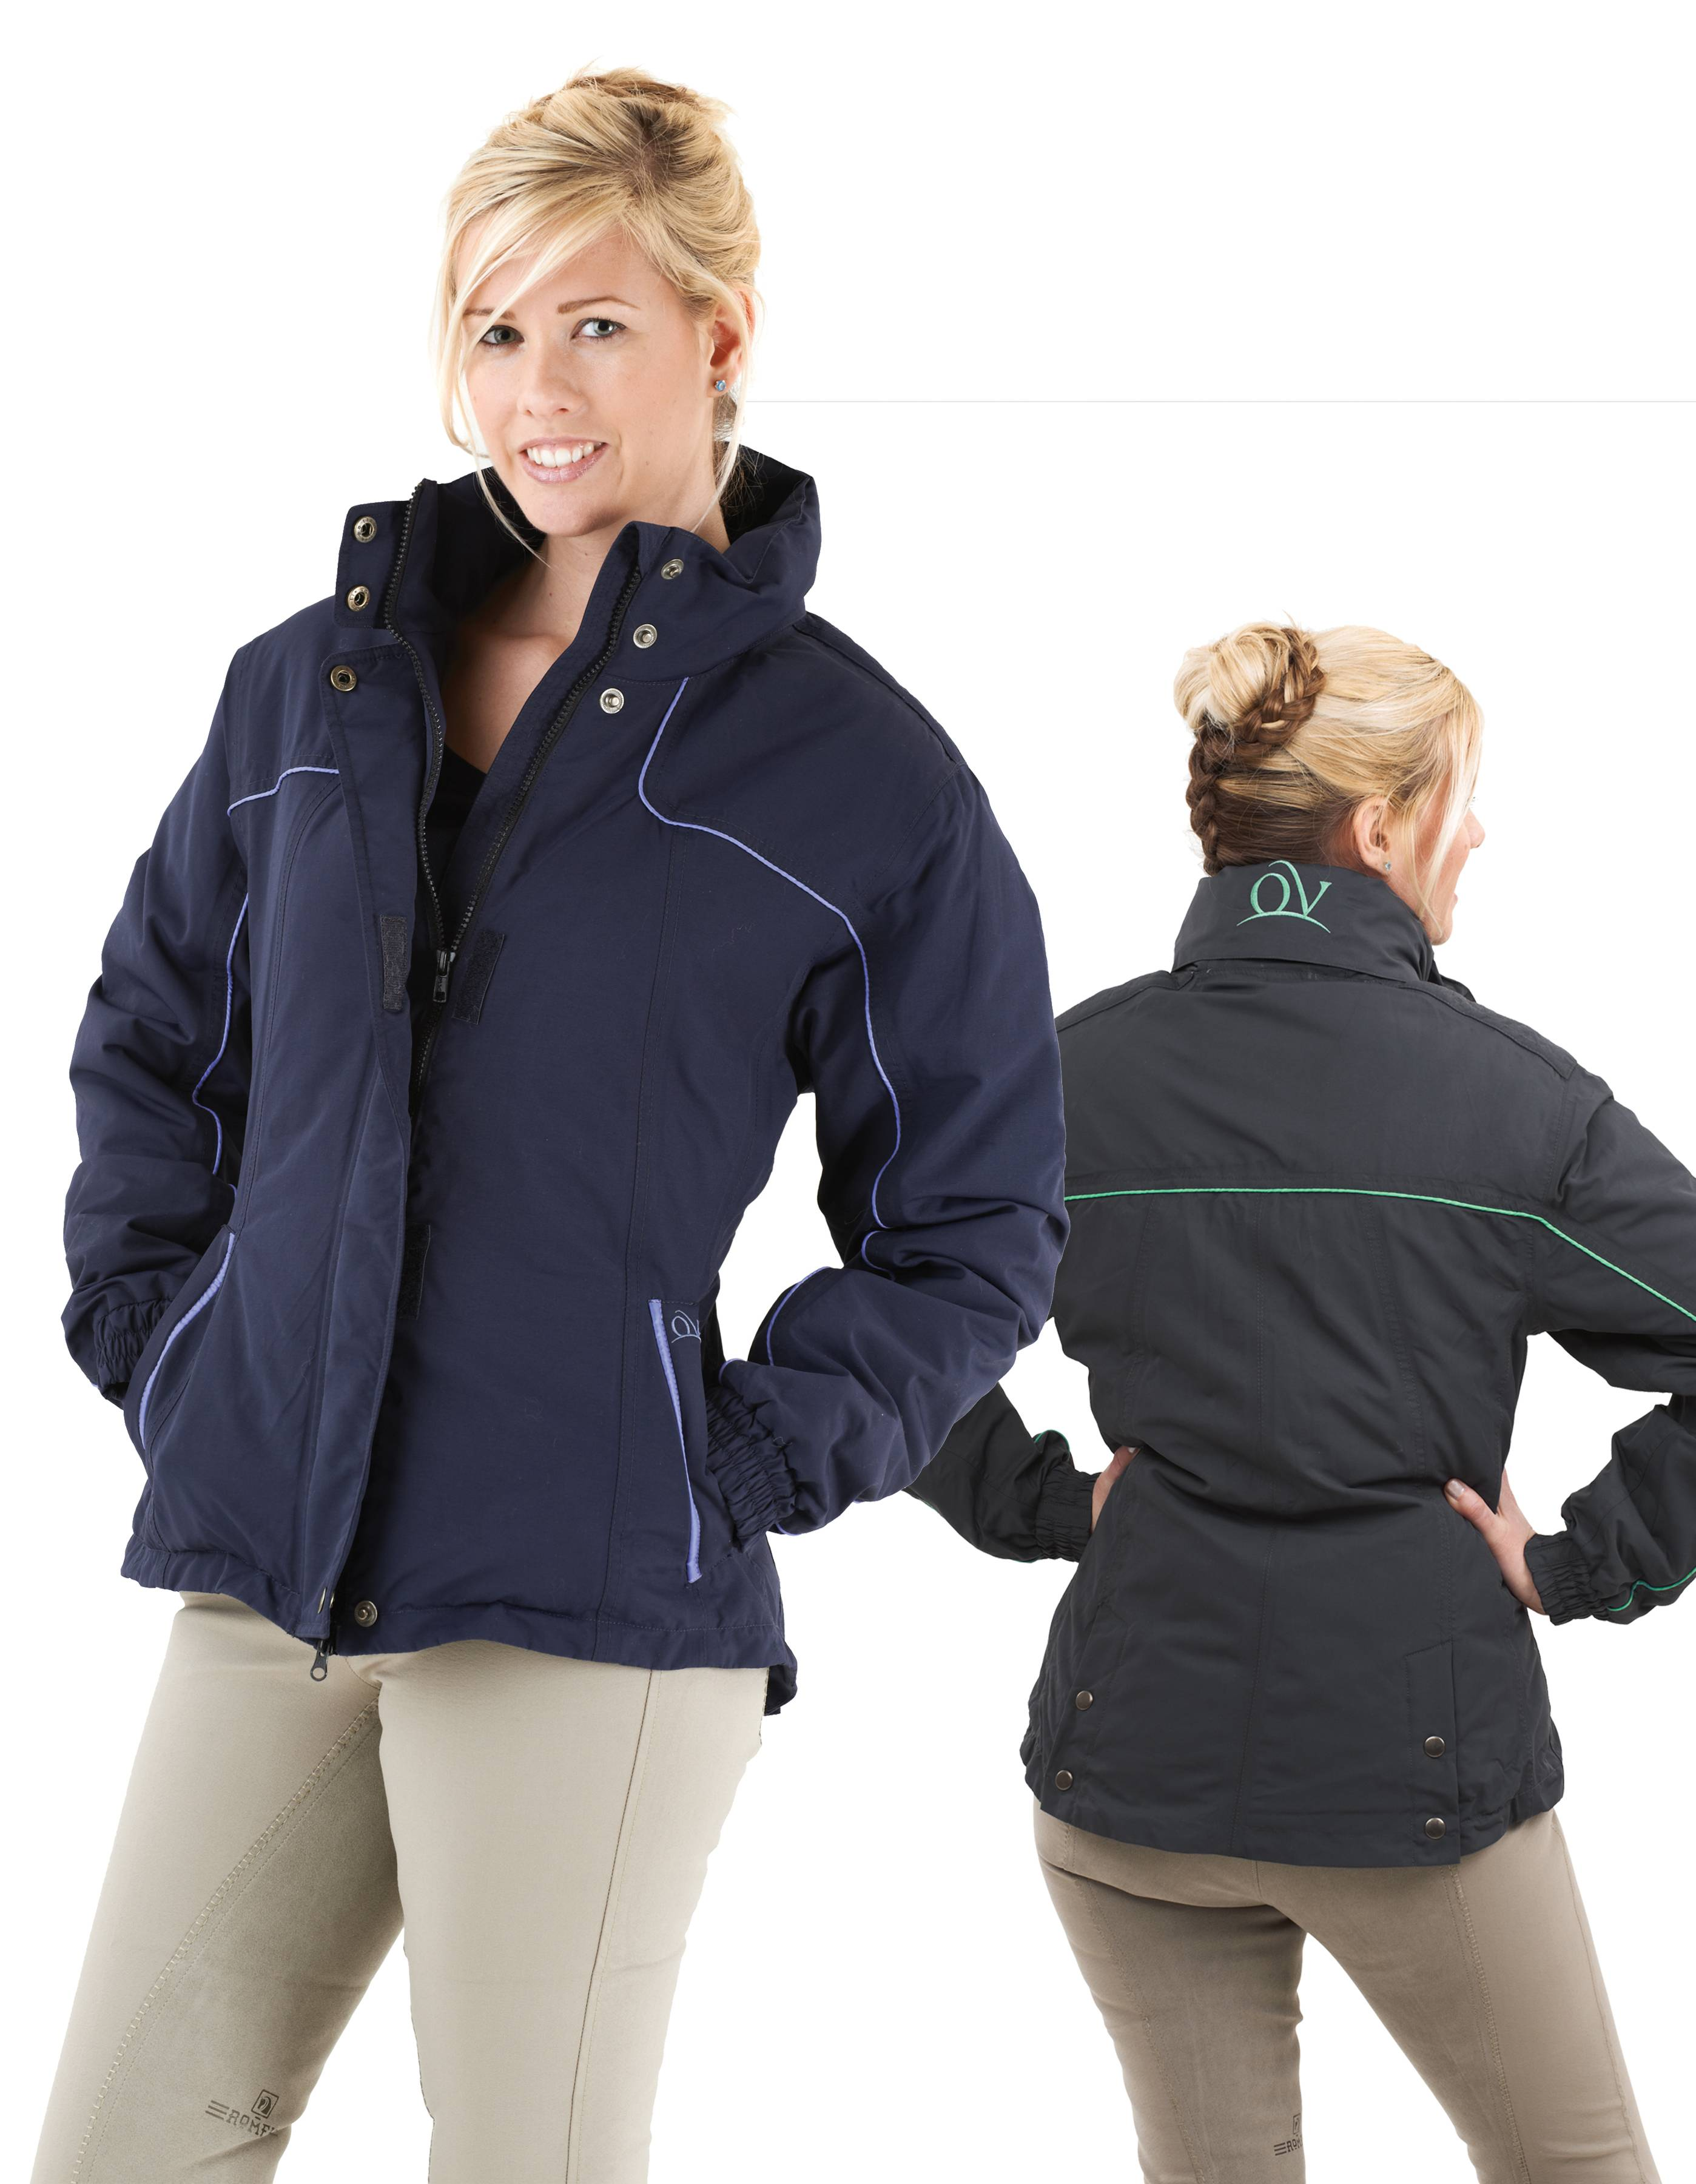 Ovation Ladies' Providence Riding Coat